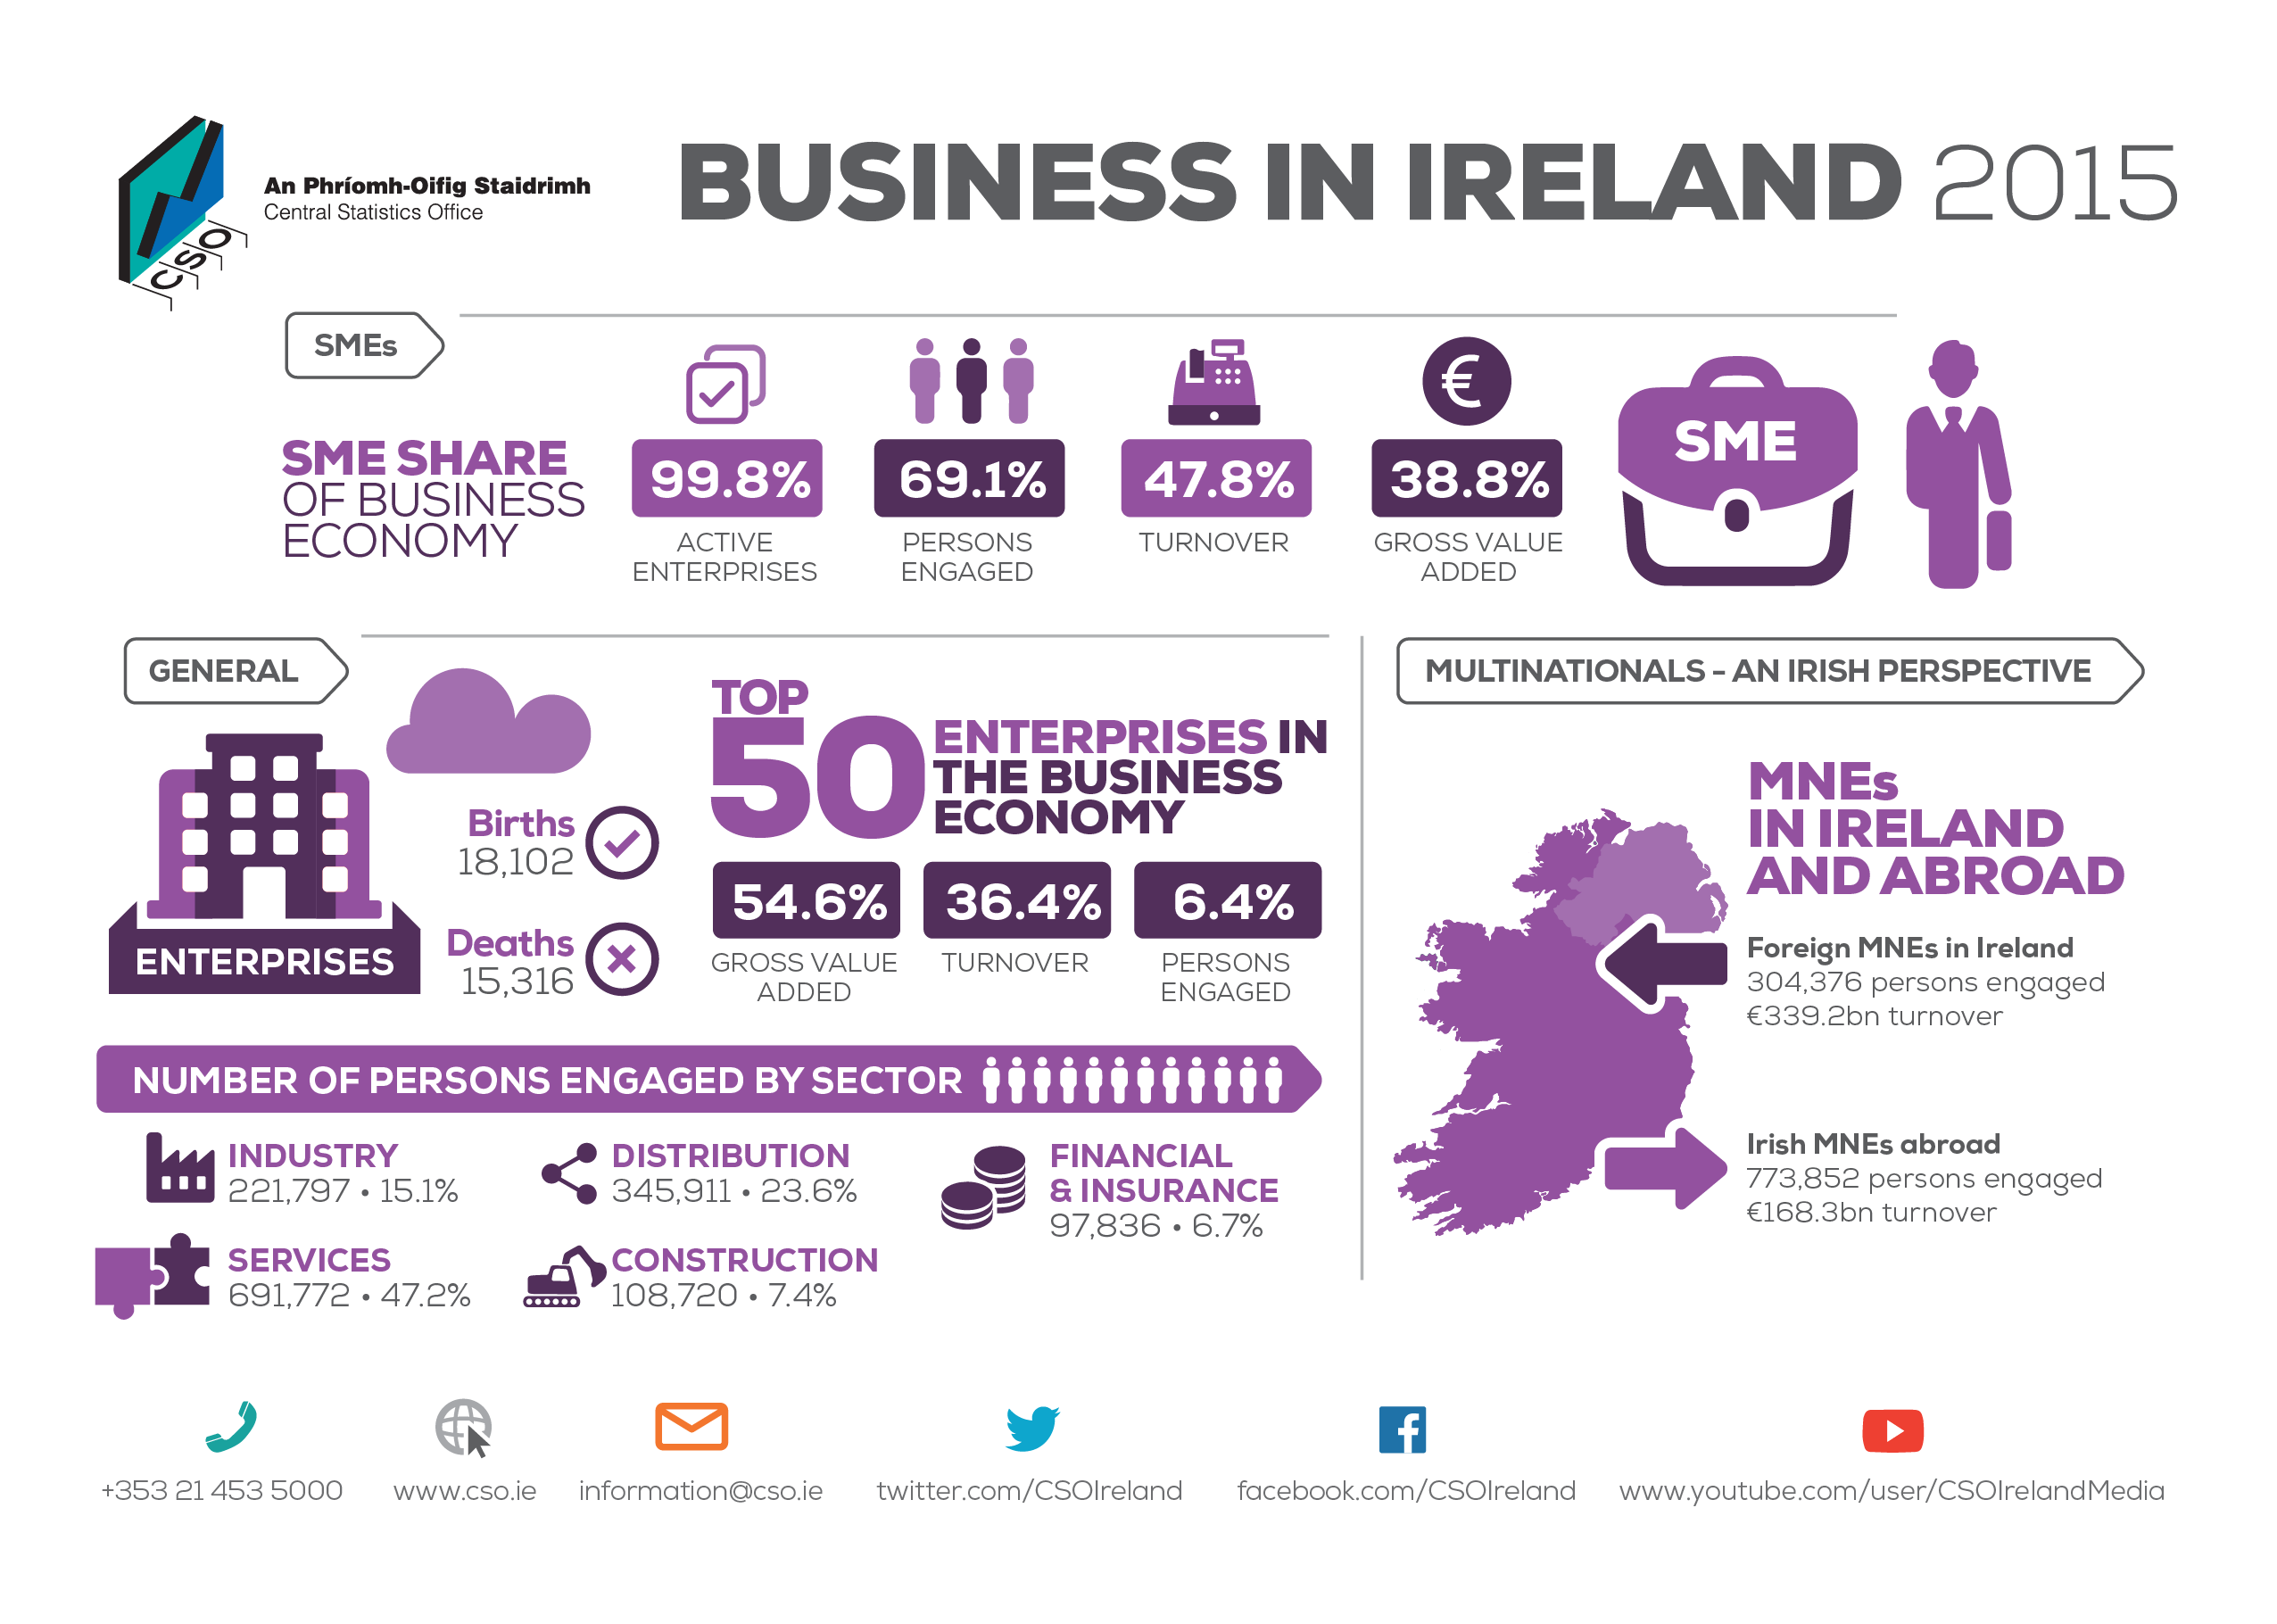 Business in Ireland 2015 Infographic image